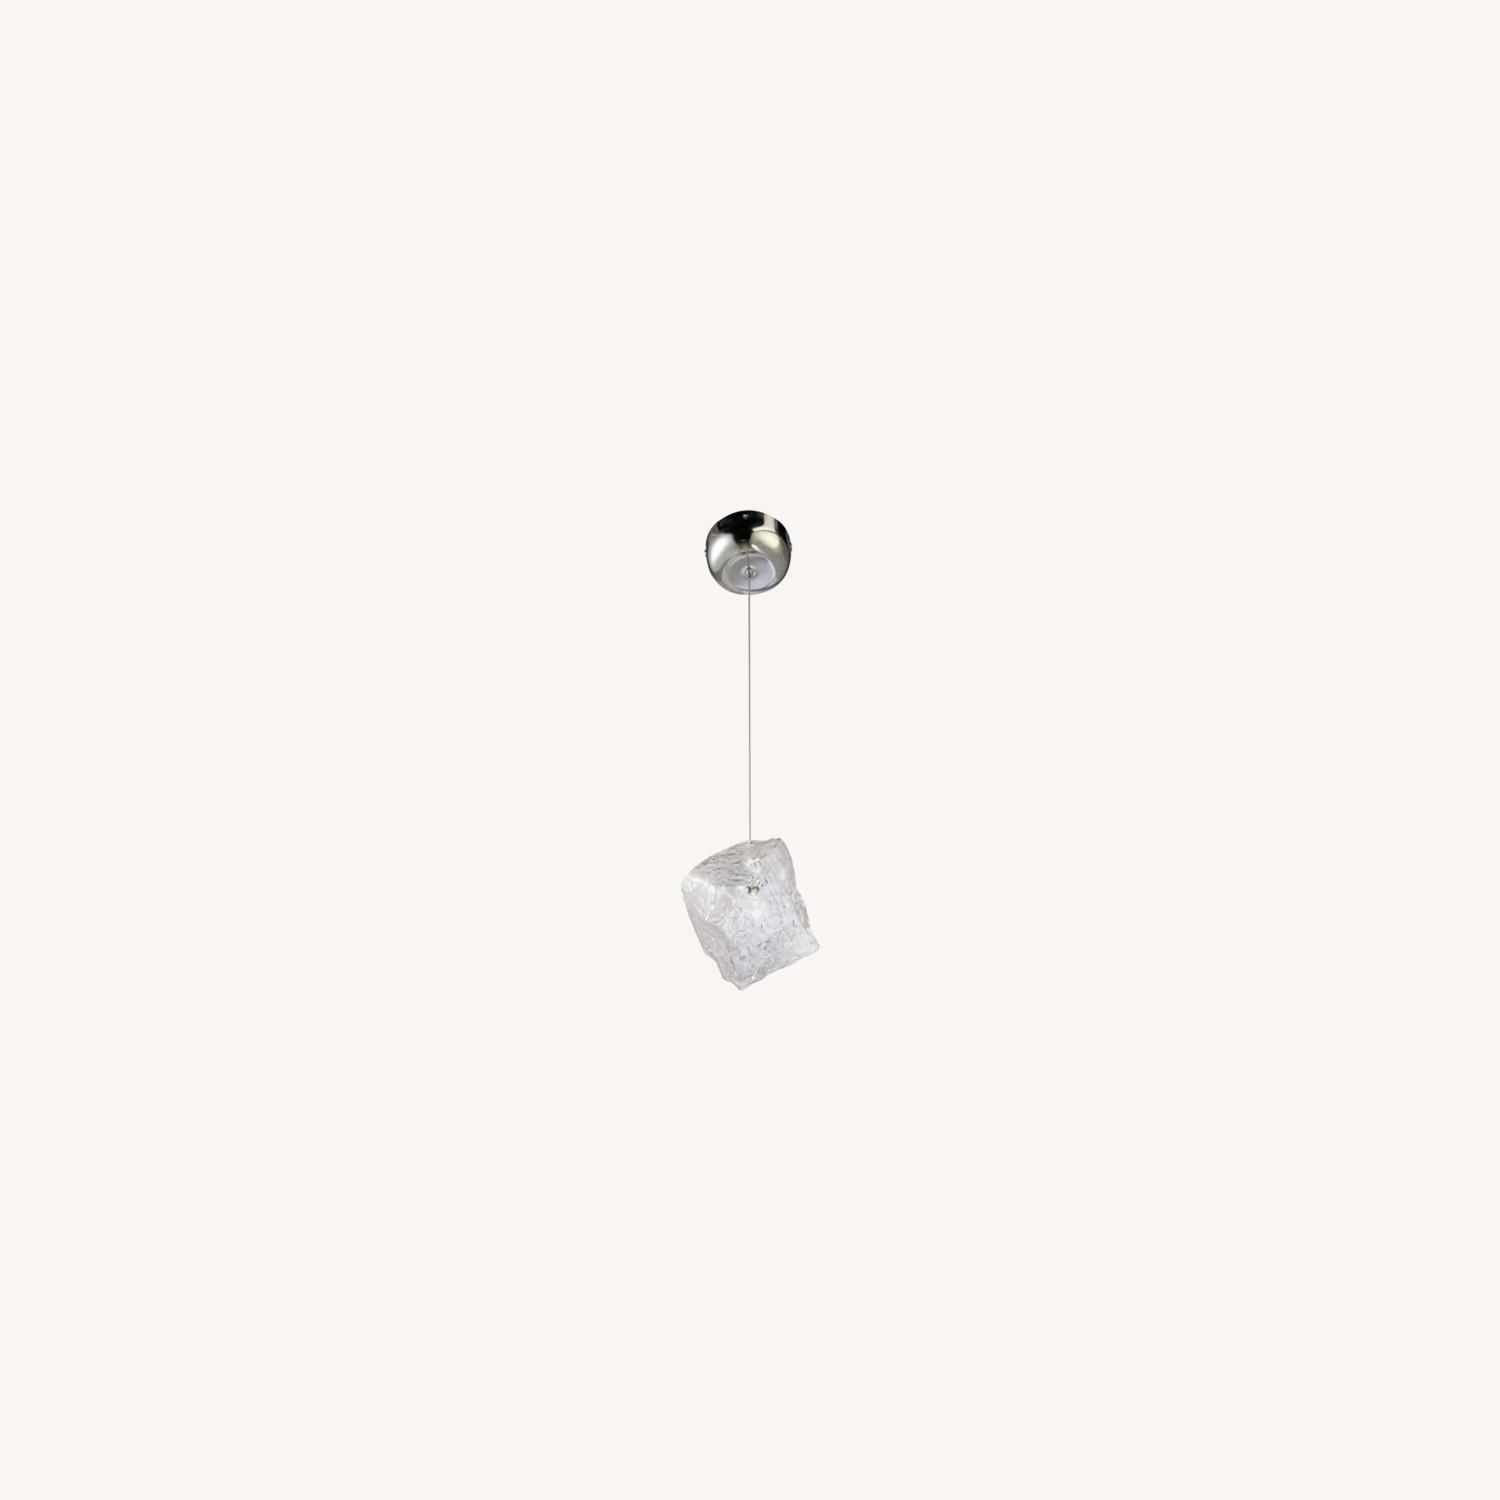 Lamp In Clear Glass Ice Pendant Design - image-7